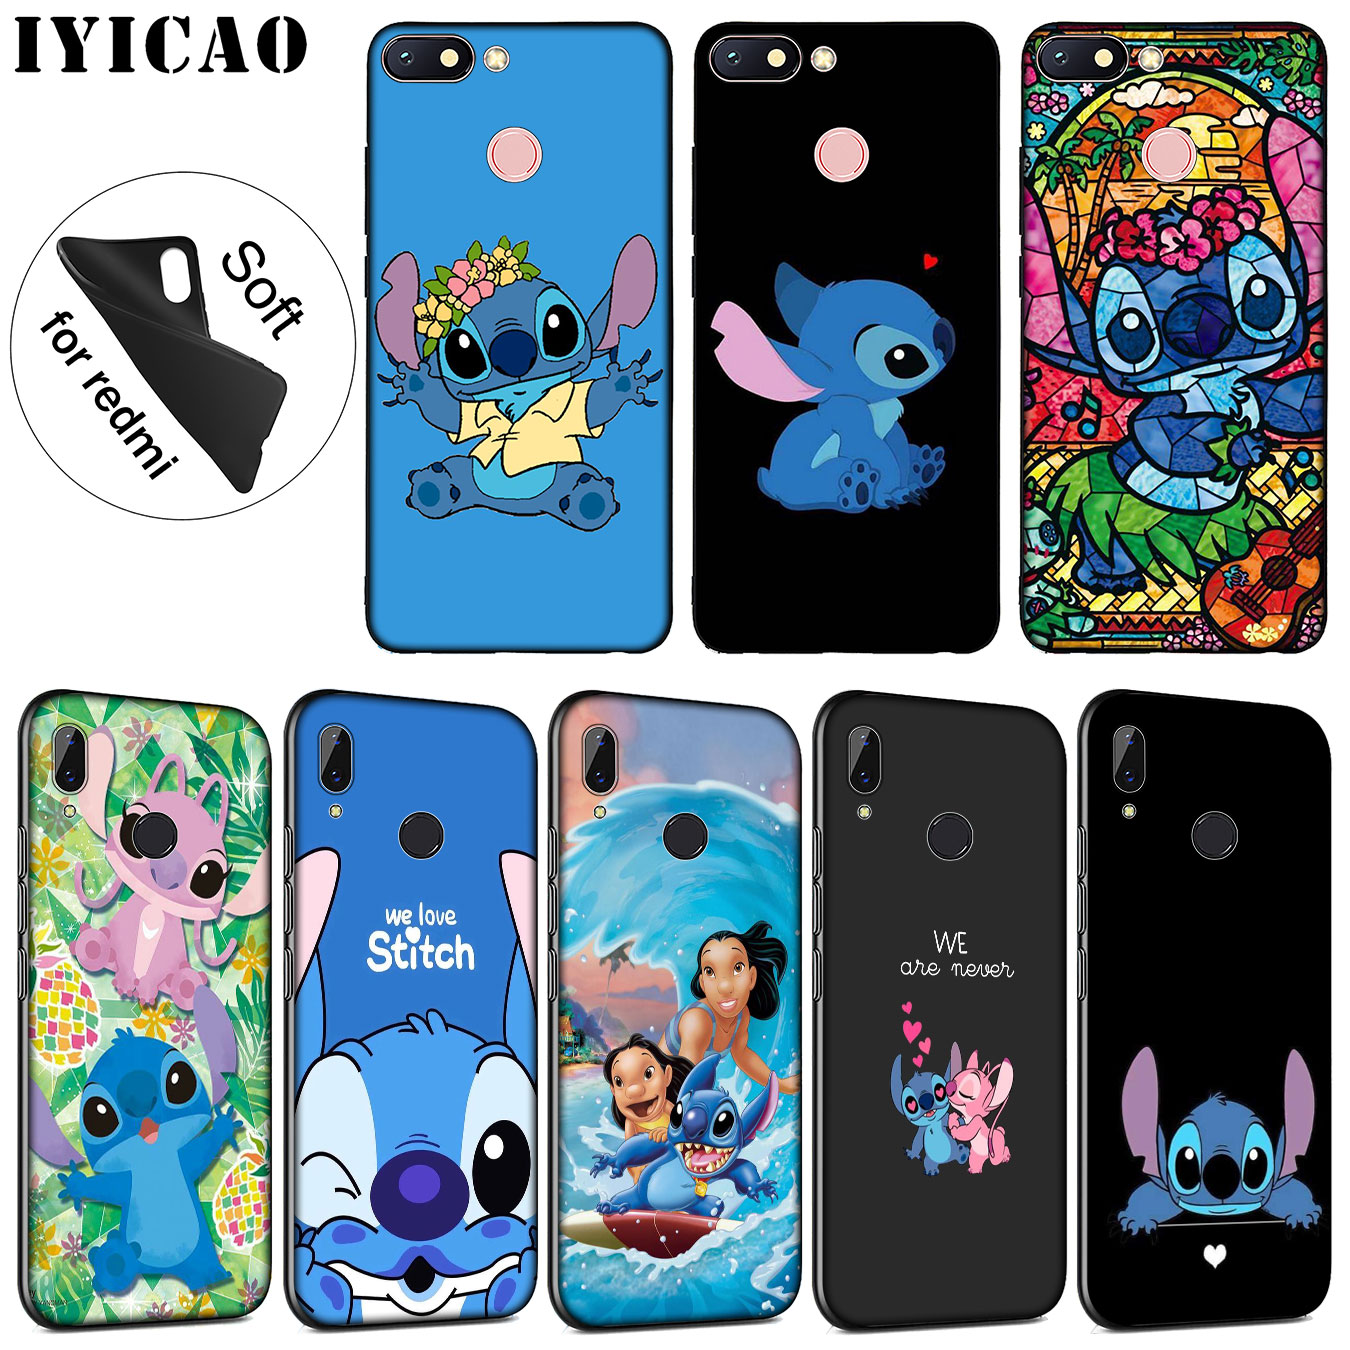 Fitted Cases Iyicao Cartoon Doctor Nurse Hot Fashion Fun Dynamic Soft Silicone Case For Xiaomi Redmi 6a 5a Note 7 4 4x 5 Plus 6 Pro Cover Cheapest Price From Our Site Cellphones & Telecommunications